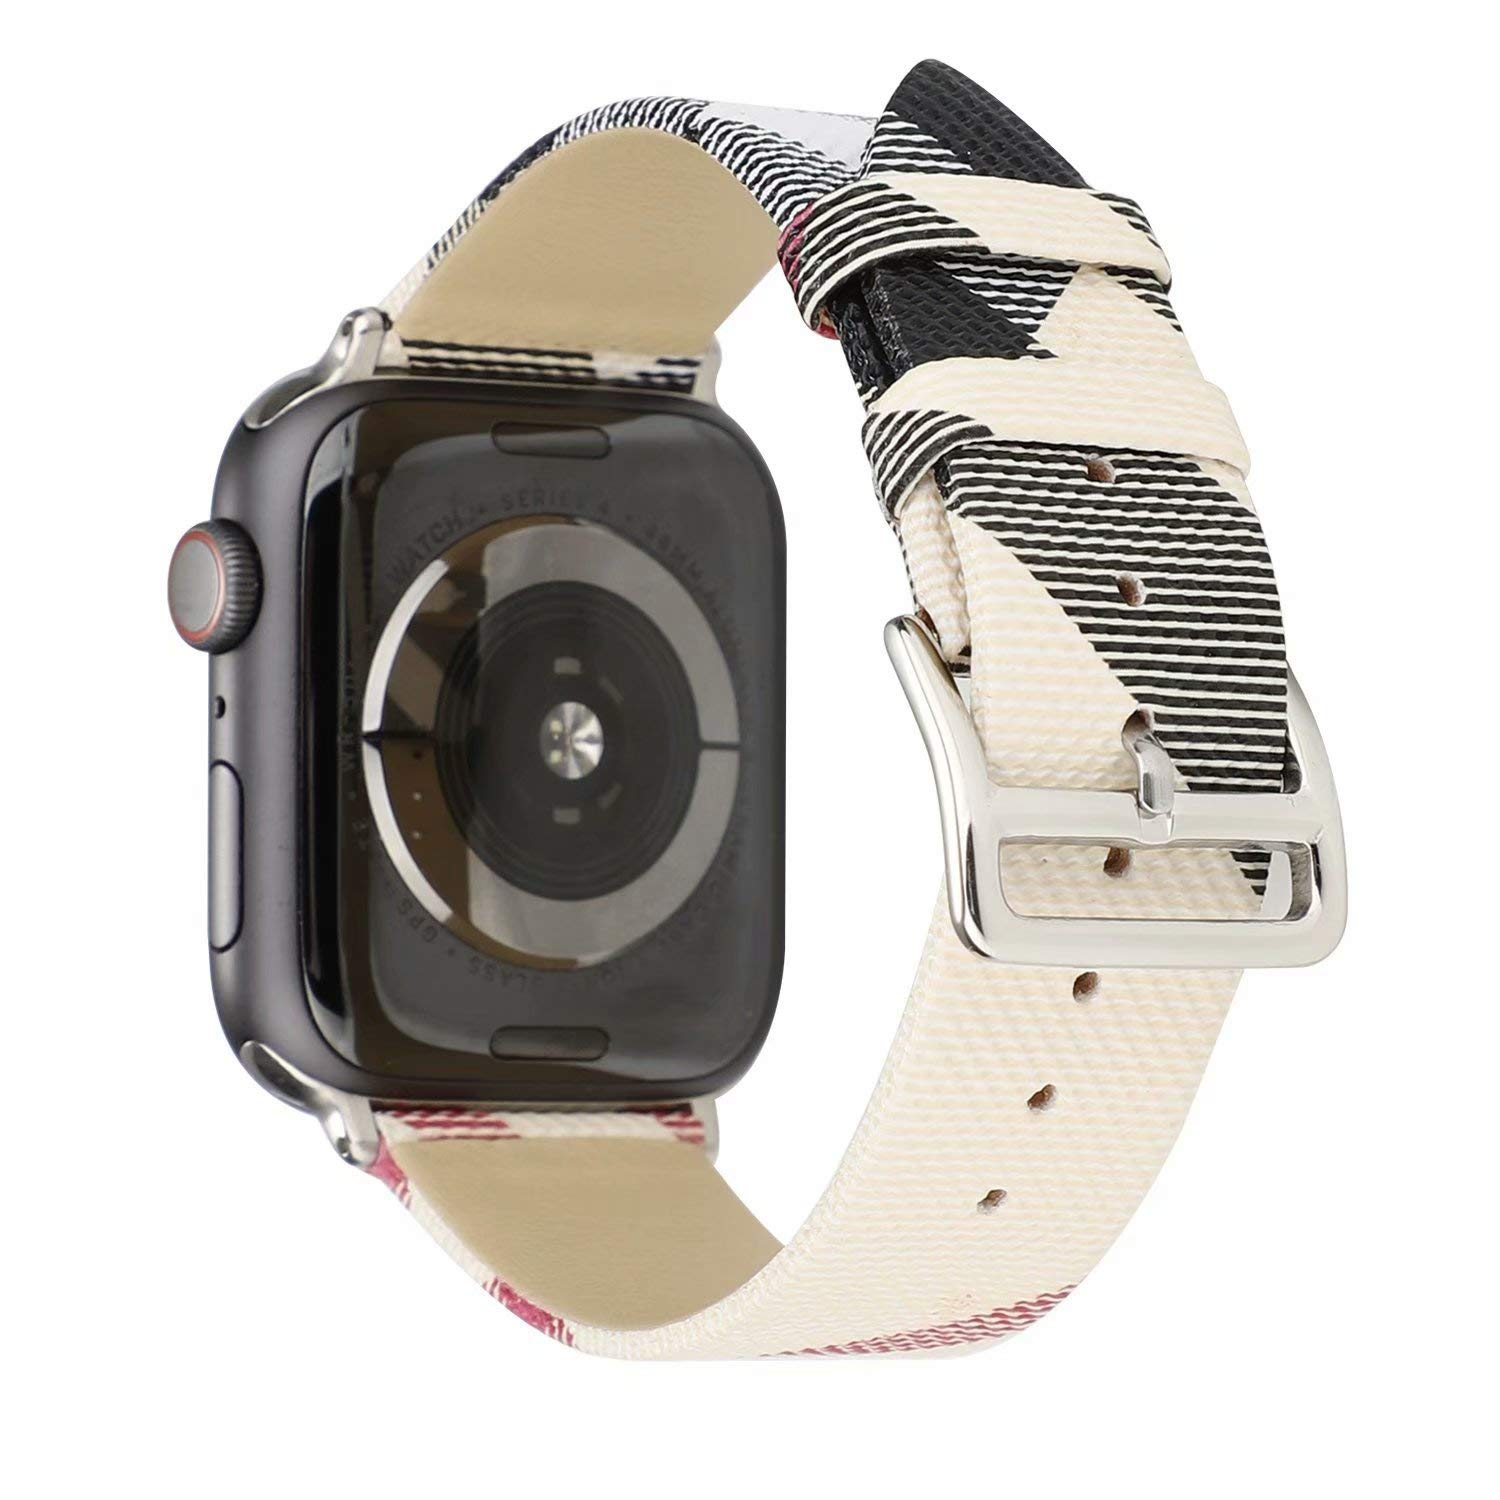 for Smart Watch Band 4series 4 for Apple Watch Band L for Apple Watch Band 42mm for for Apple Watch Band Series 2 Series 3 Series 4 I3 3 for Apple Watch Band Series 3 for Apple (Khaki, 42mm44mm)